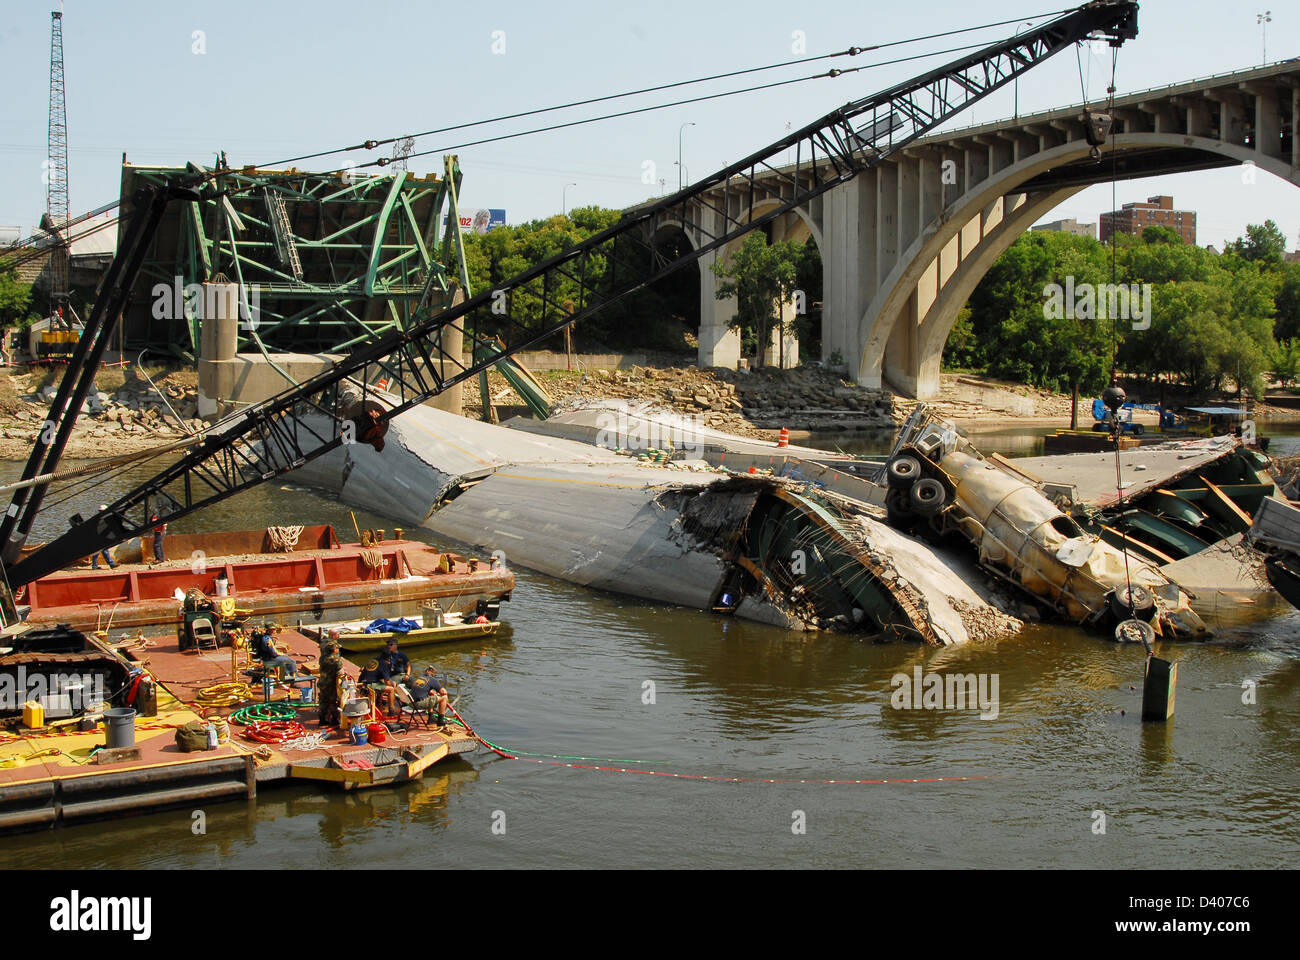 View of the remains of the I-35 bridge collapse and recovery efforts August 17, 2007 in Minneapolis, MN. The bridge - Stock Image